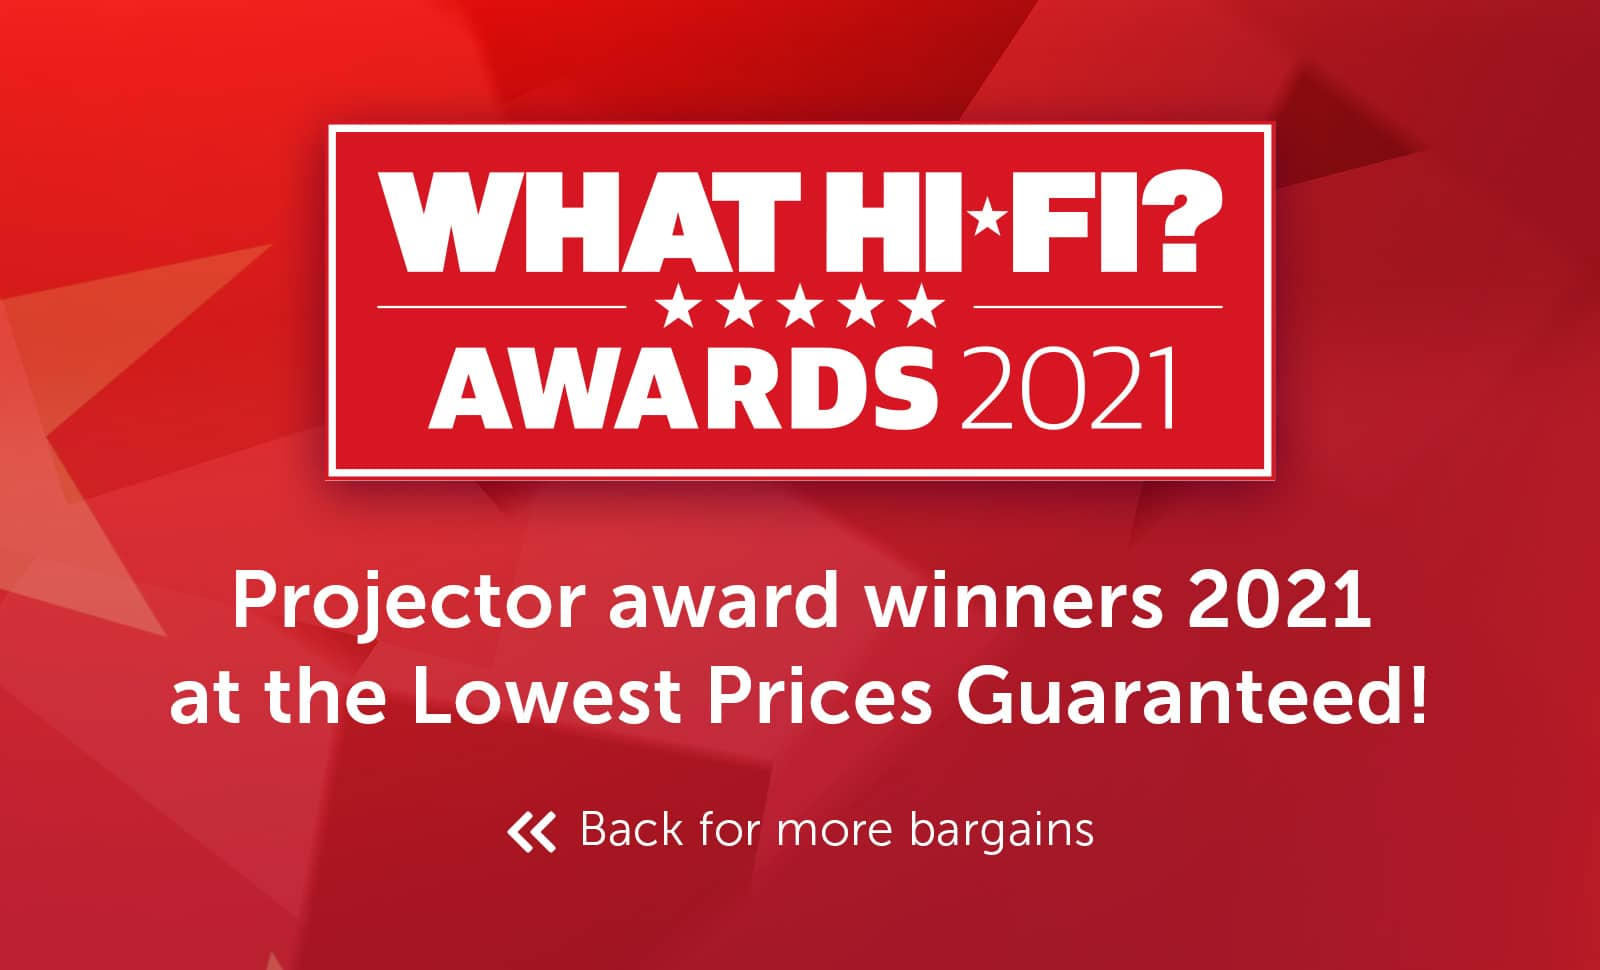 What Hi-Fi? Best Buy Awards 2021 - Projector